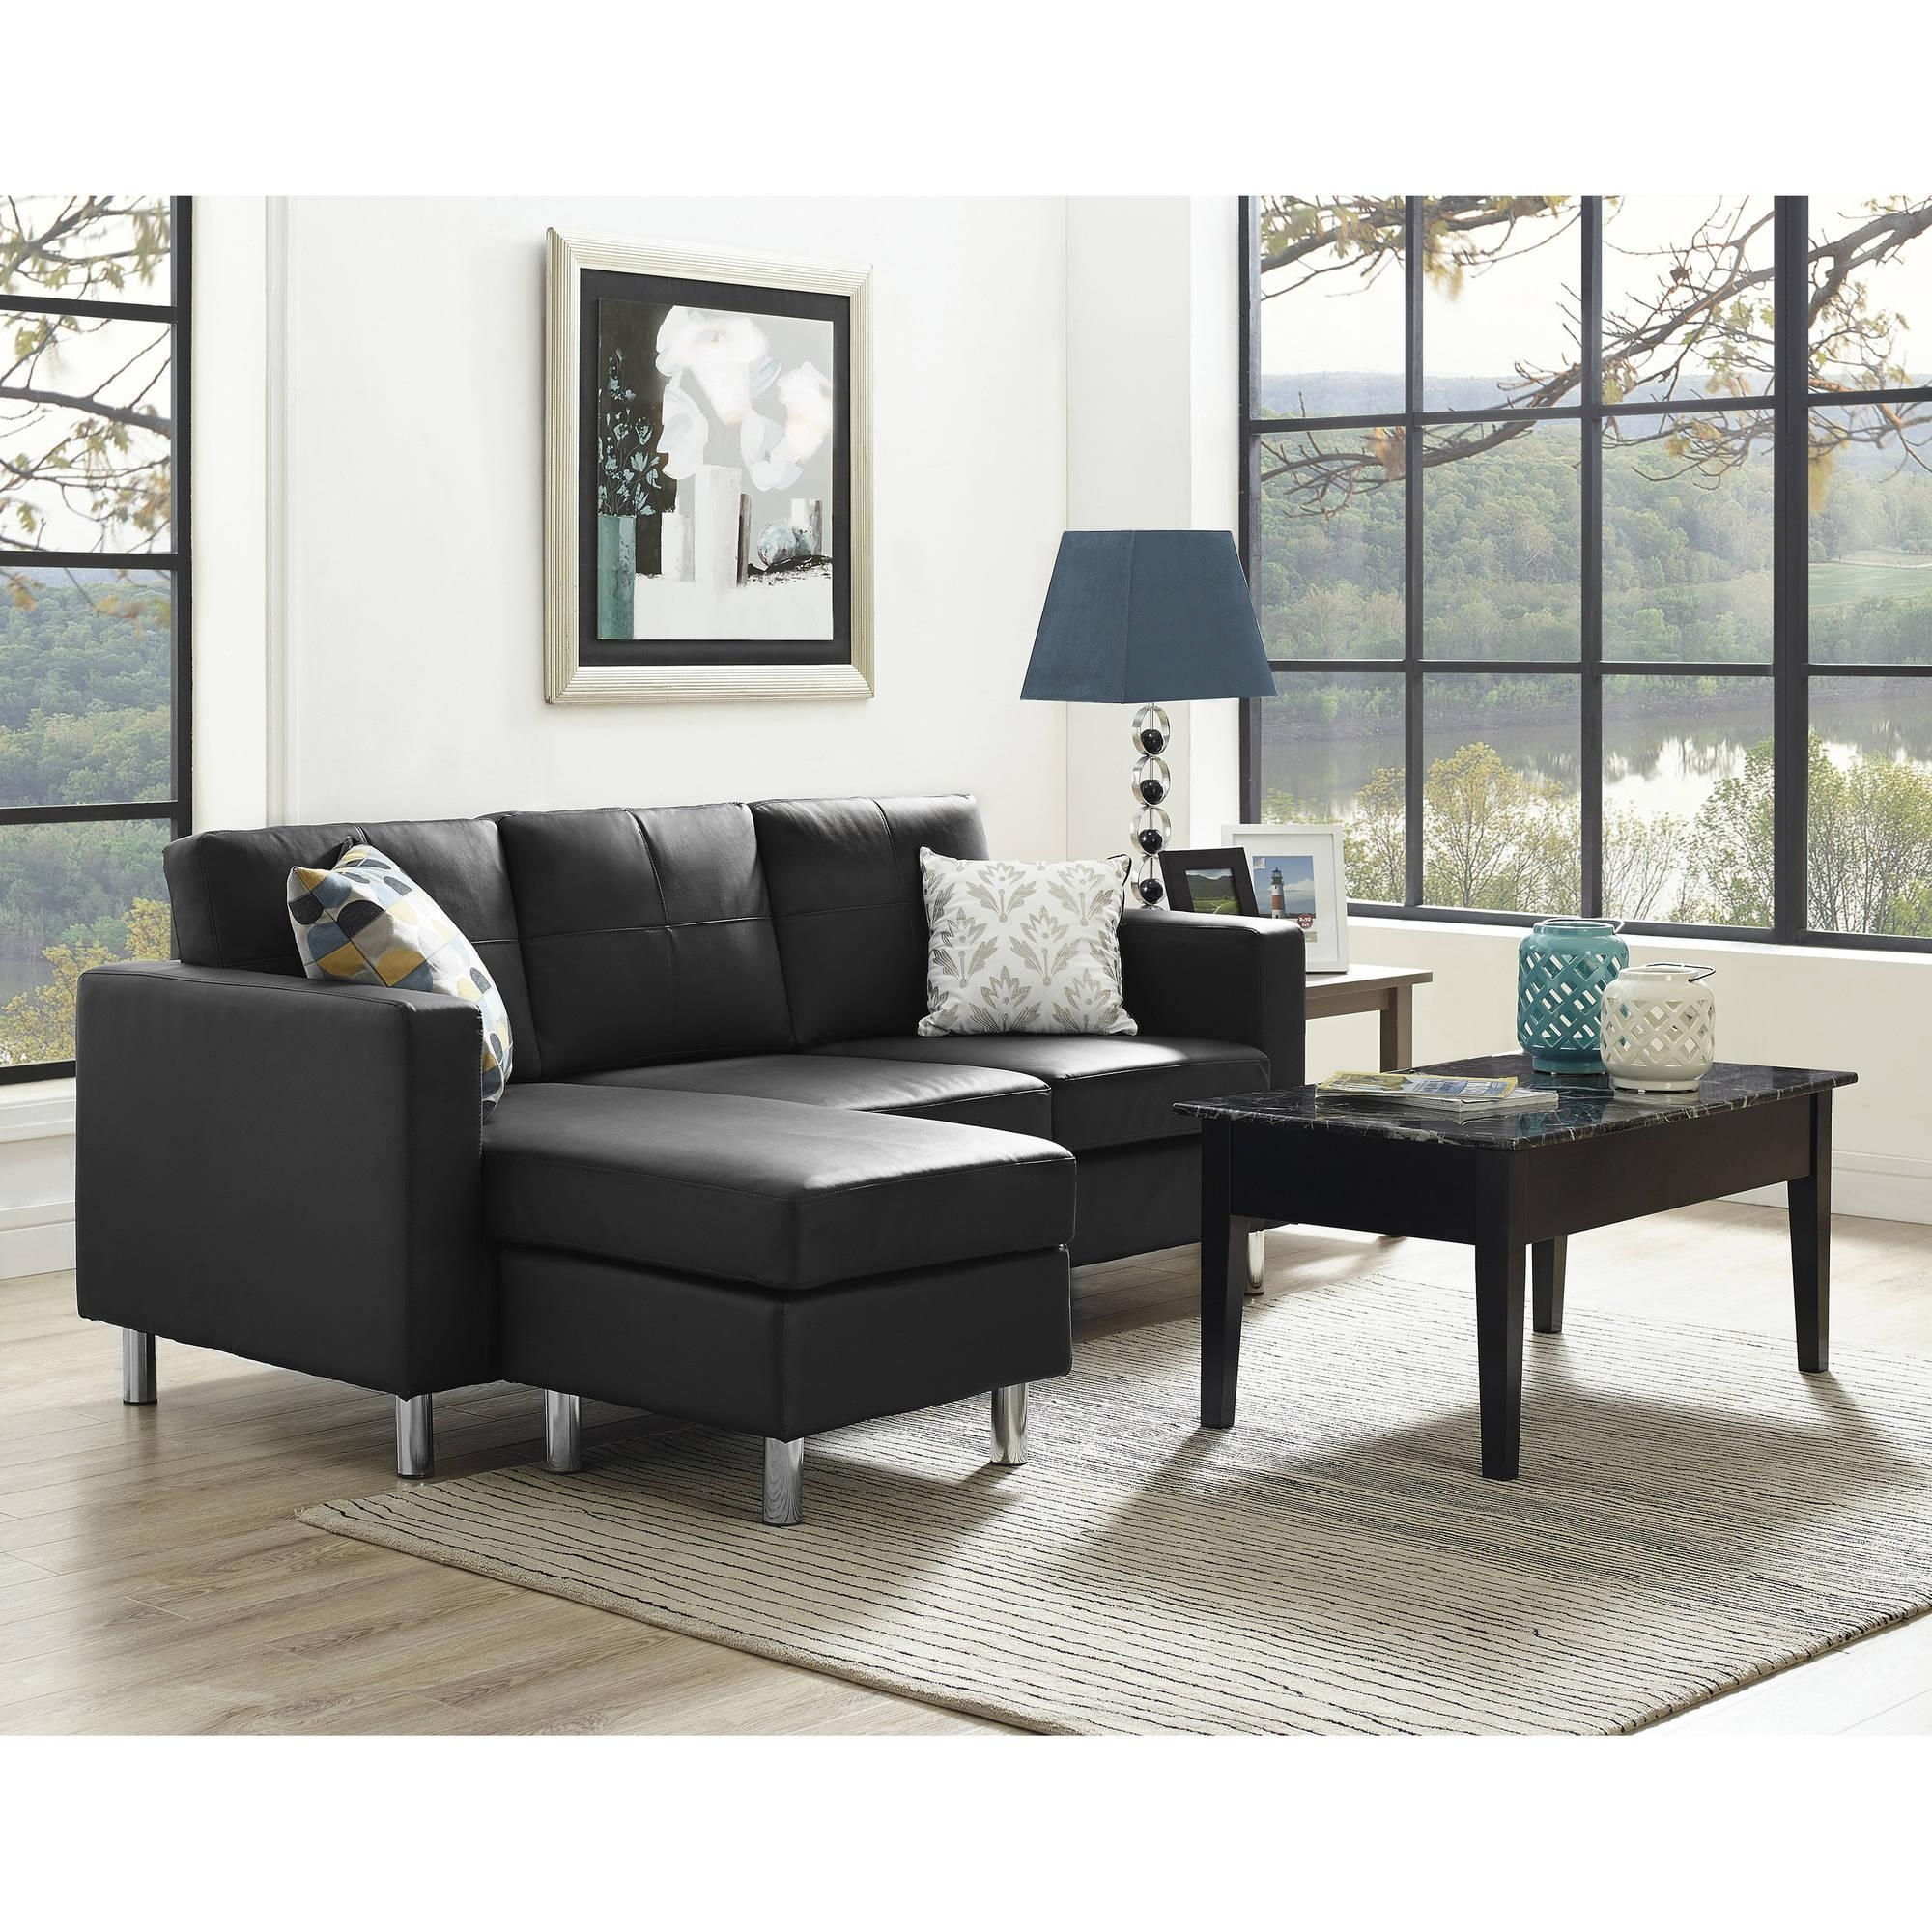 Dorel Living Small Spaces Configurable Sectional Sofa, Multiple With Mini Sectional Sofas (View 6 of 20)